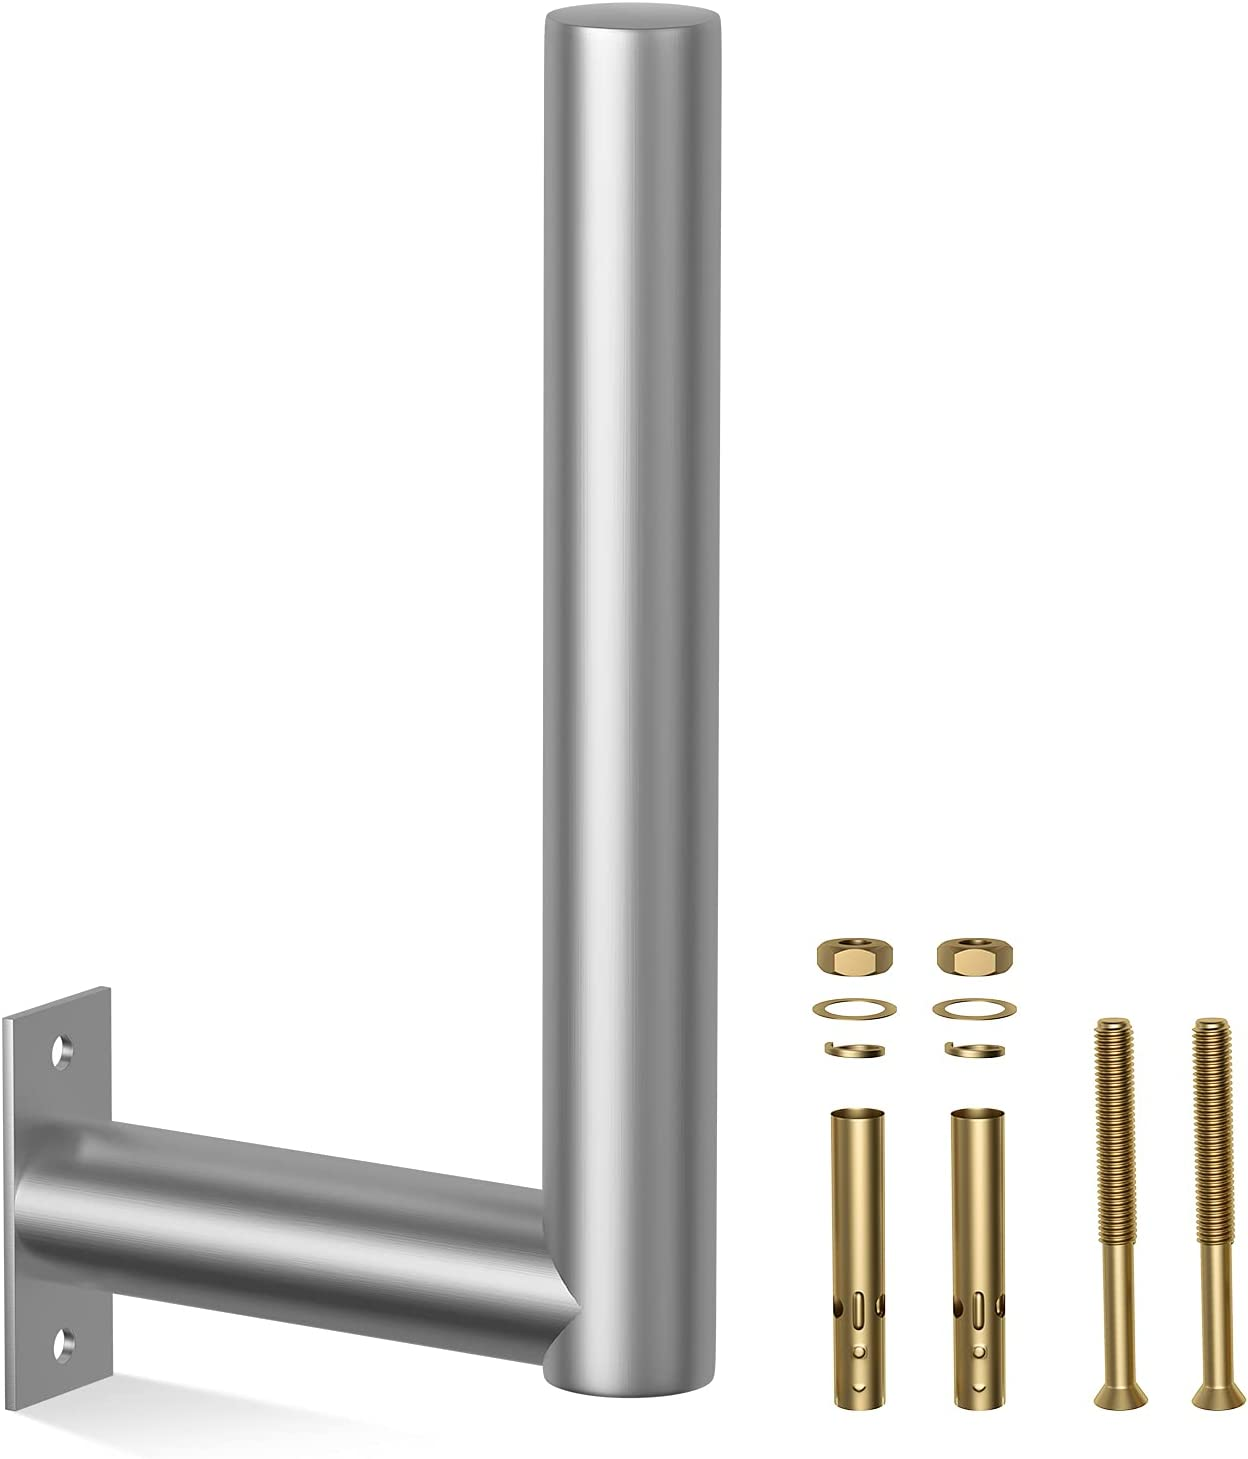 ORPEY Pole Mount for Outside Antenna Outd Universal - 12